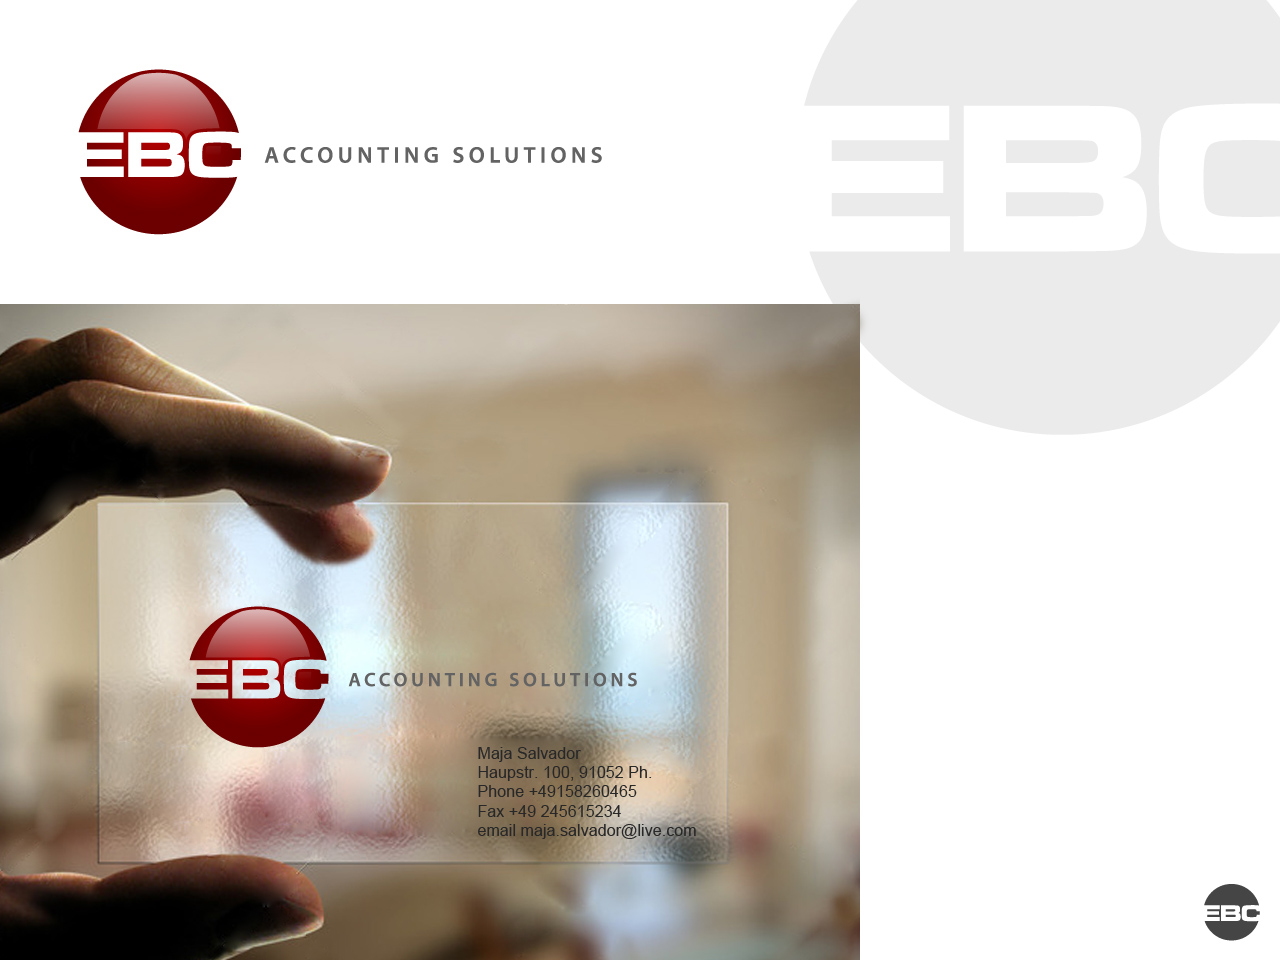 Logo Design by jpbituin - Entry No. 85 in the Logo Design Contest New Logo Design for EBC Accounting Solutions.